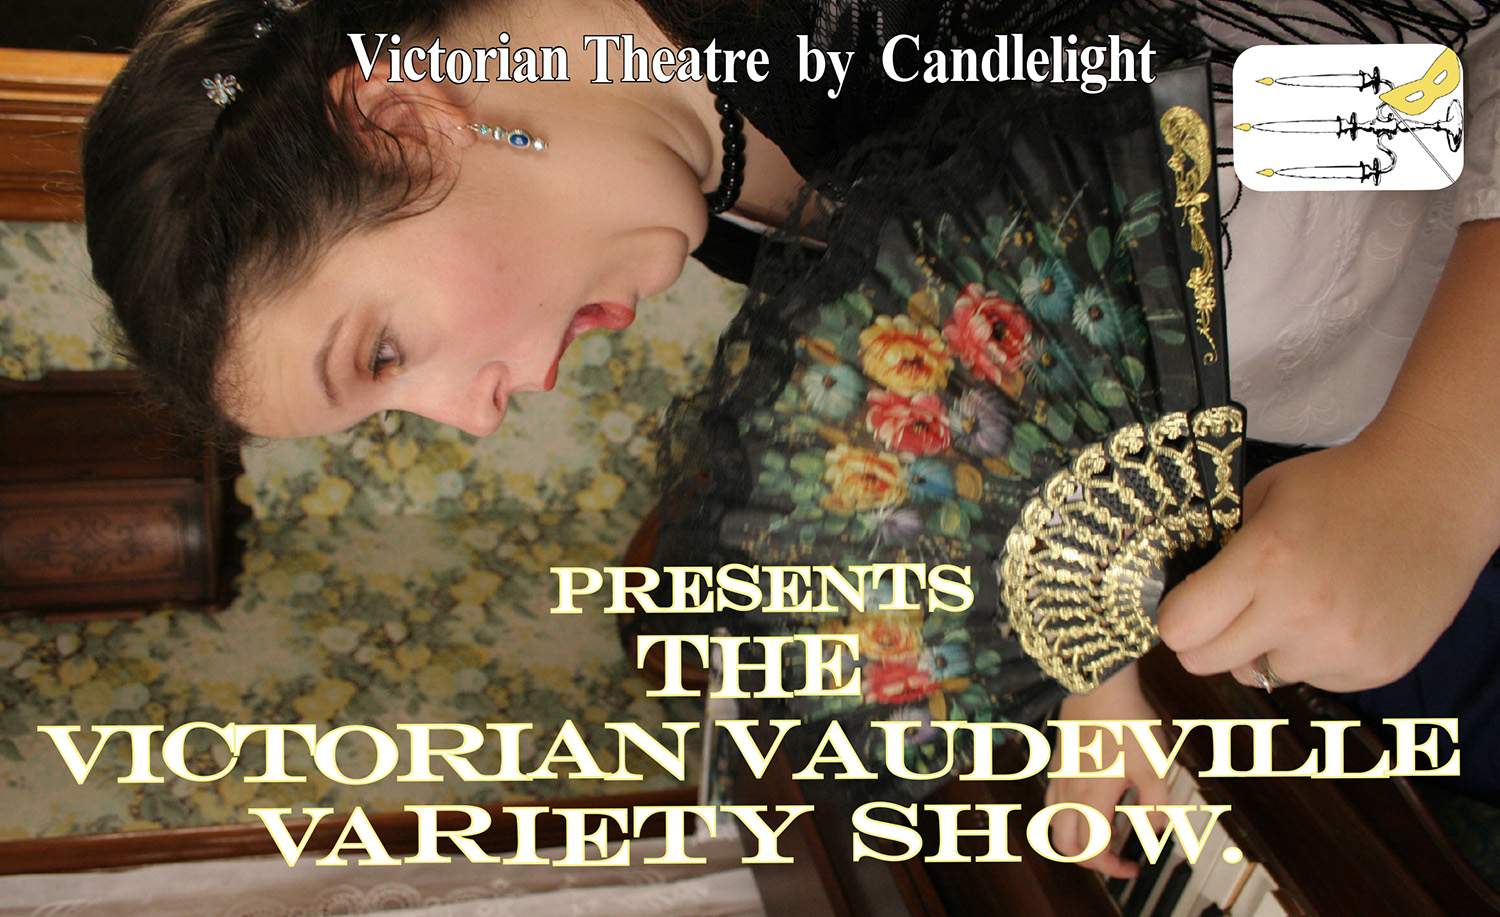 Photographic image of a woman holding a hand fan, she has a surprised look on her face. Text reads: The Victorian Vaudeville Variety Show.